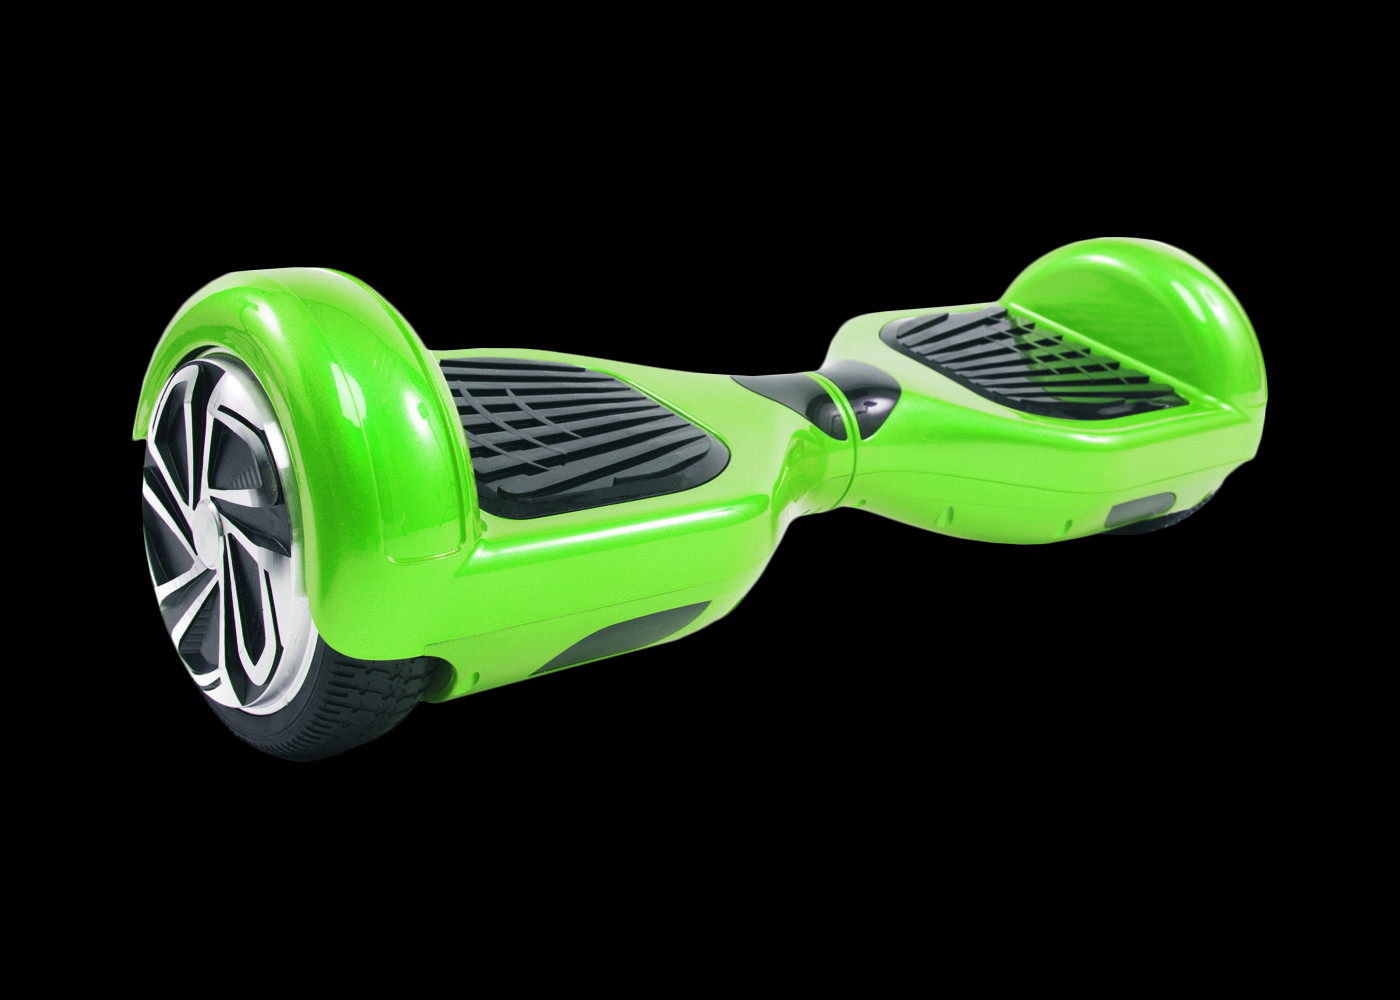 smart balance board standard lime green hover board nation. Black Bedroom Furniture Sets. Home Design Ideas